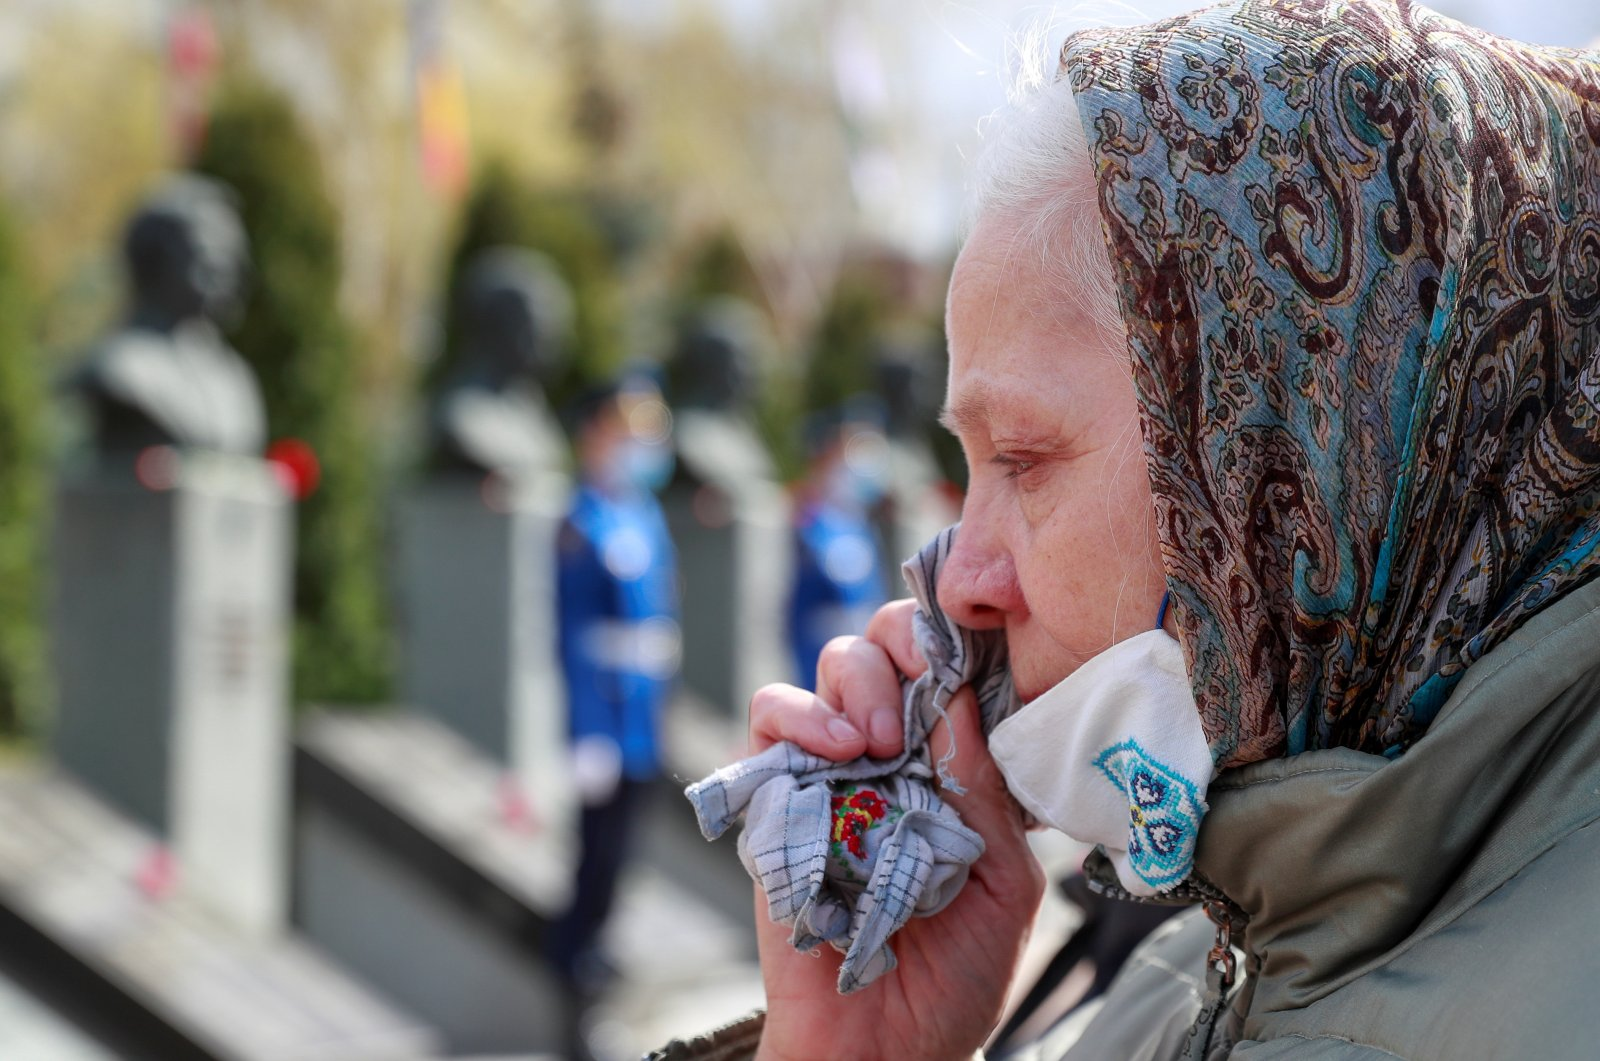 A woman sheds a tear during a commemoration ceremony marking the 35th anniversary of the Chernobyl disaster at a memorial to firefighters and workers, who died following the explosion of a reactor at the Chernobyl Nuclear Power Plant, in Kyiv, Ukraine, April 26, 2021. (Reuters Photo)